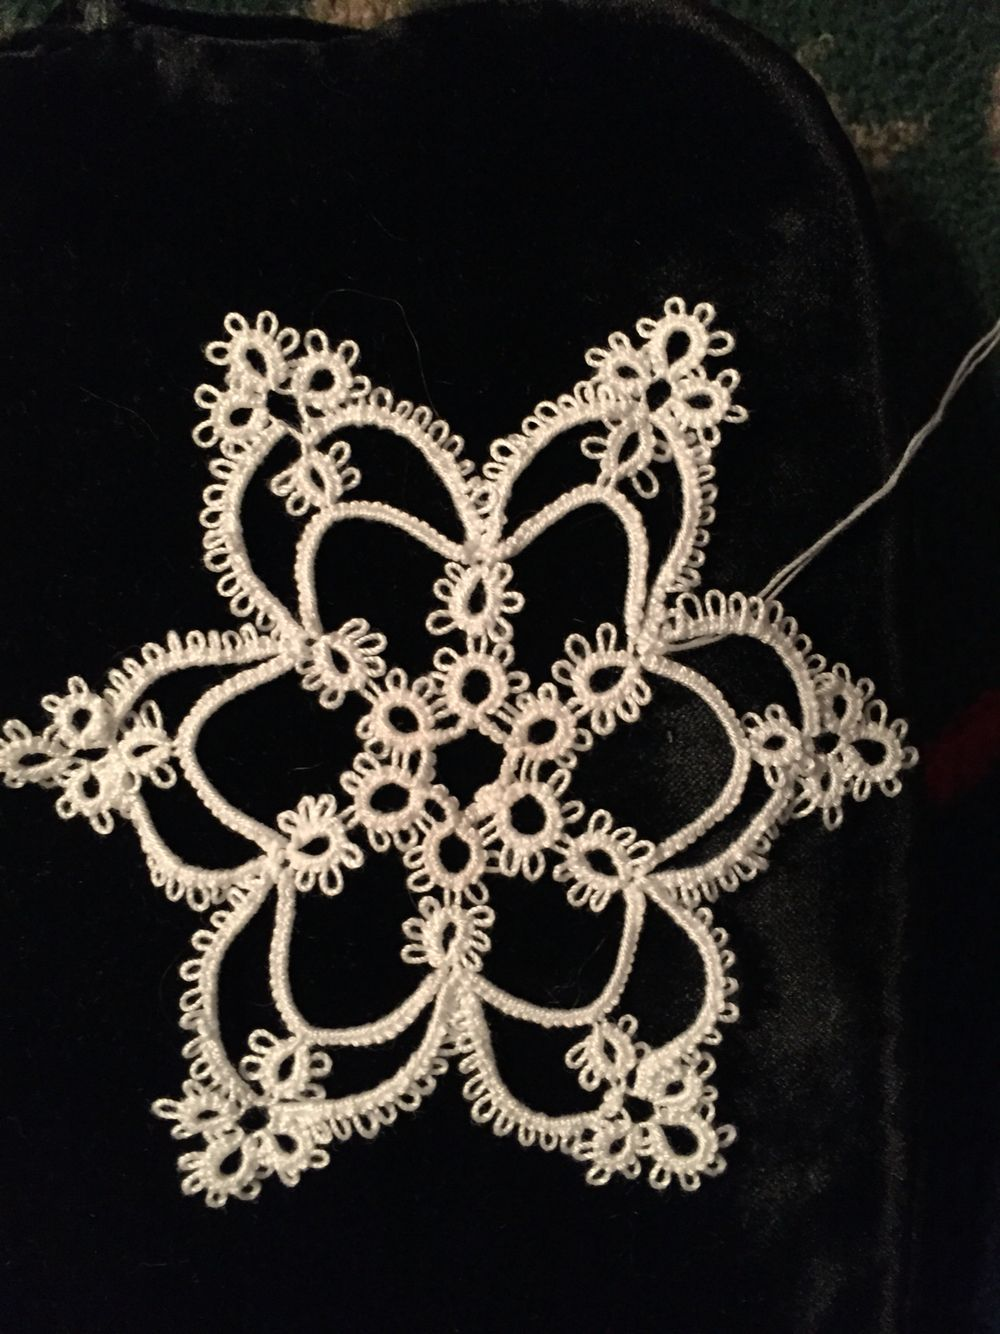 My first snowflake.